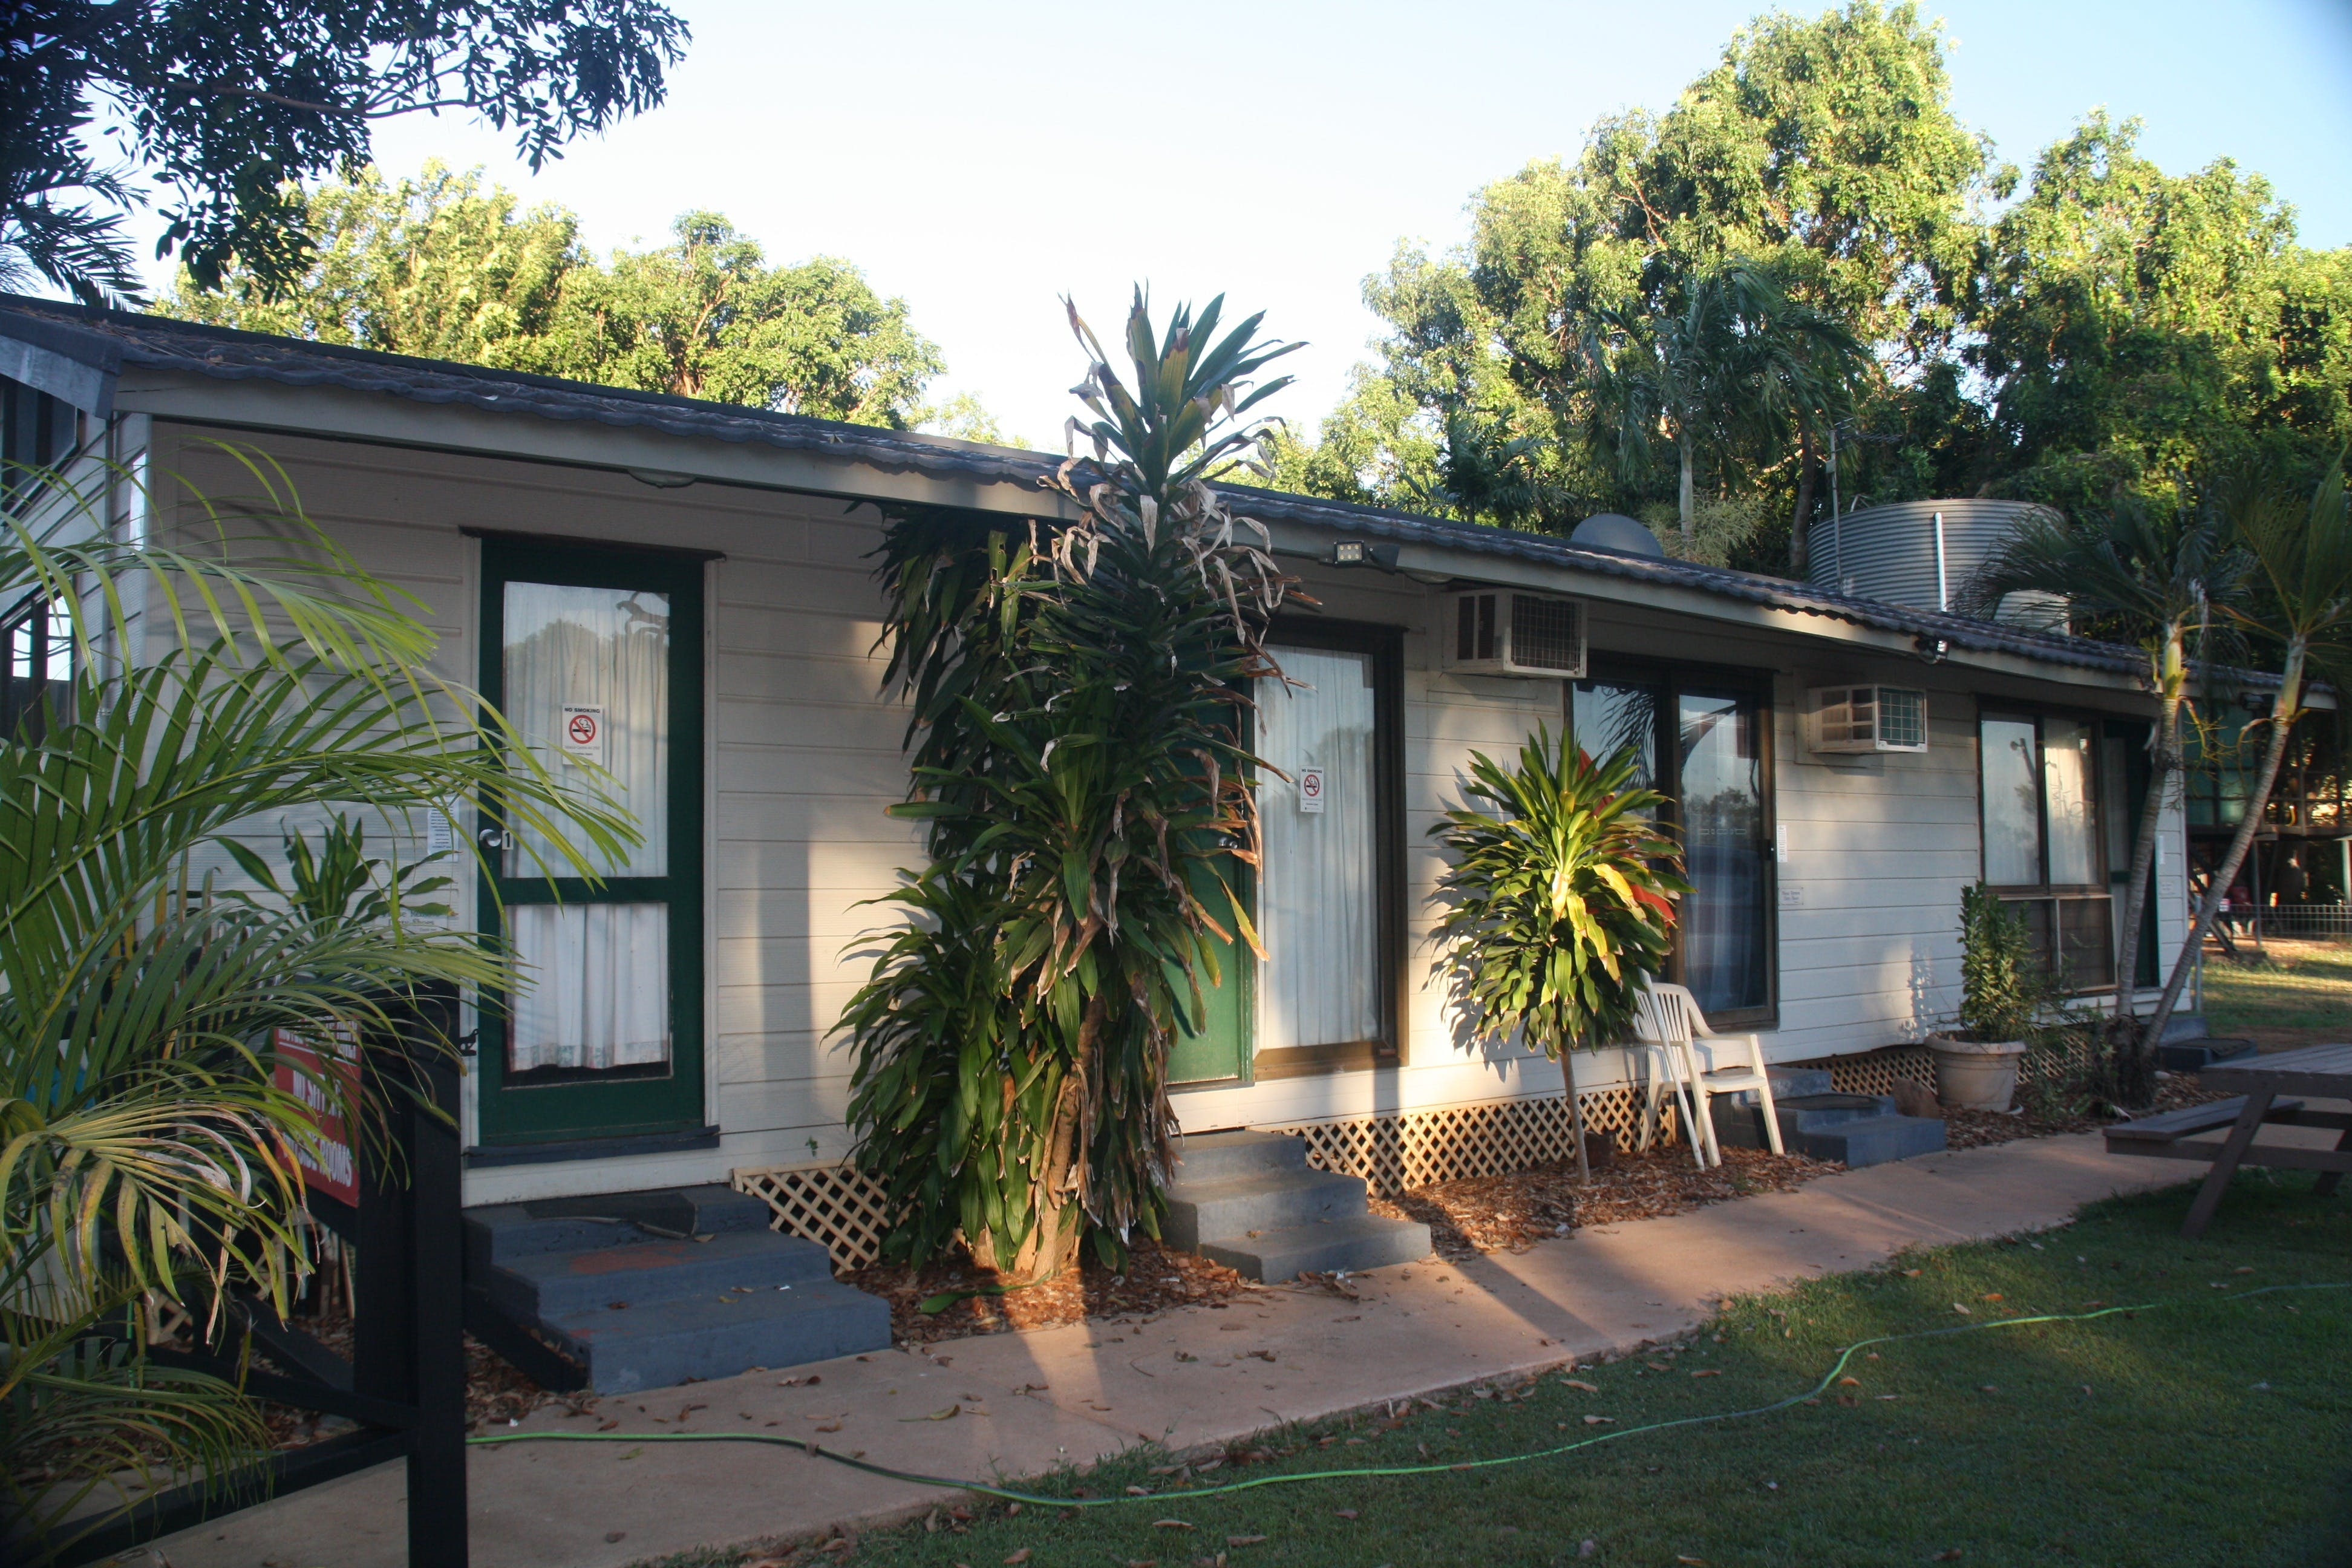 Daly River Roadside Inn - Accommodation Cooktown